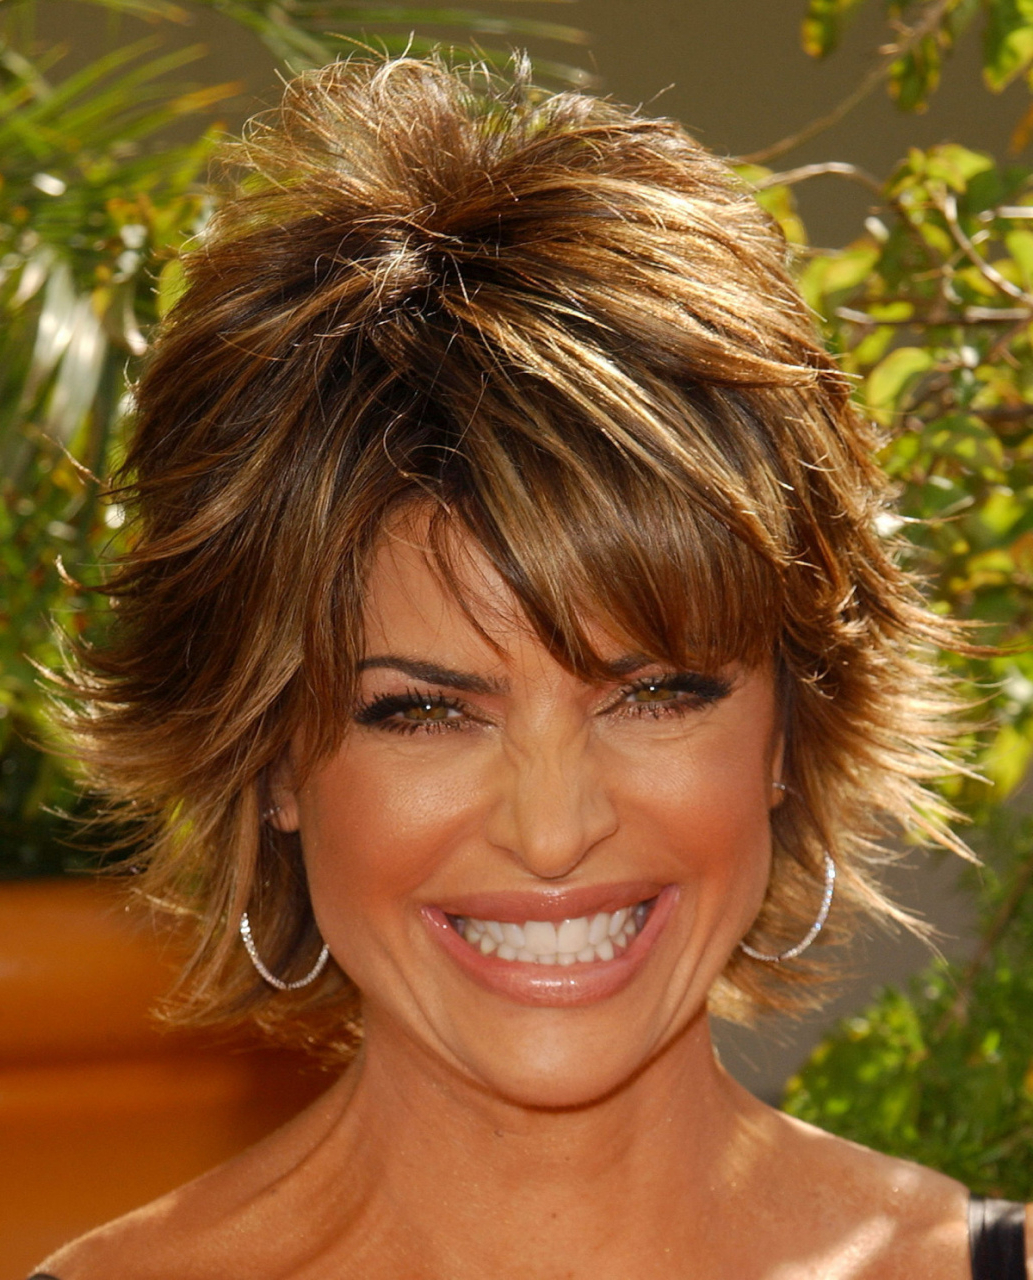 20 Hairstyles To Make You Look Younger Elegant Newest Short Haircuts Inside Short Haircuts That Make You Look Younger (View 3 of 25)